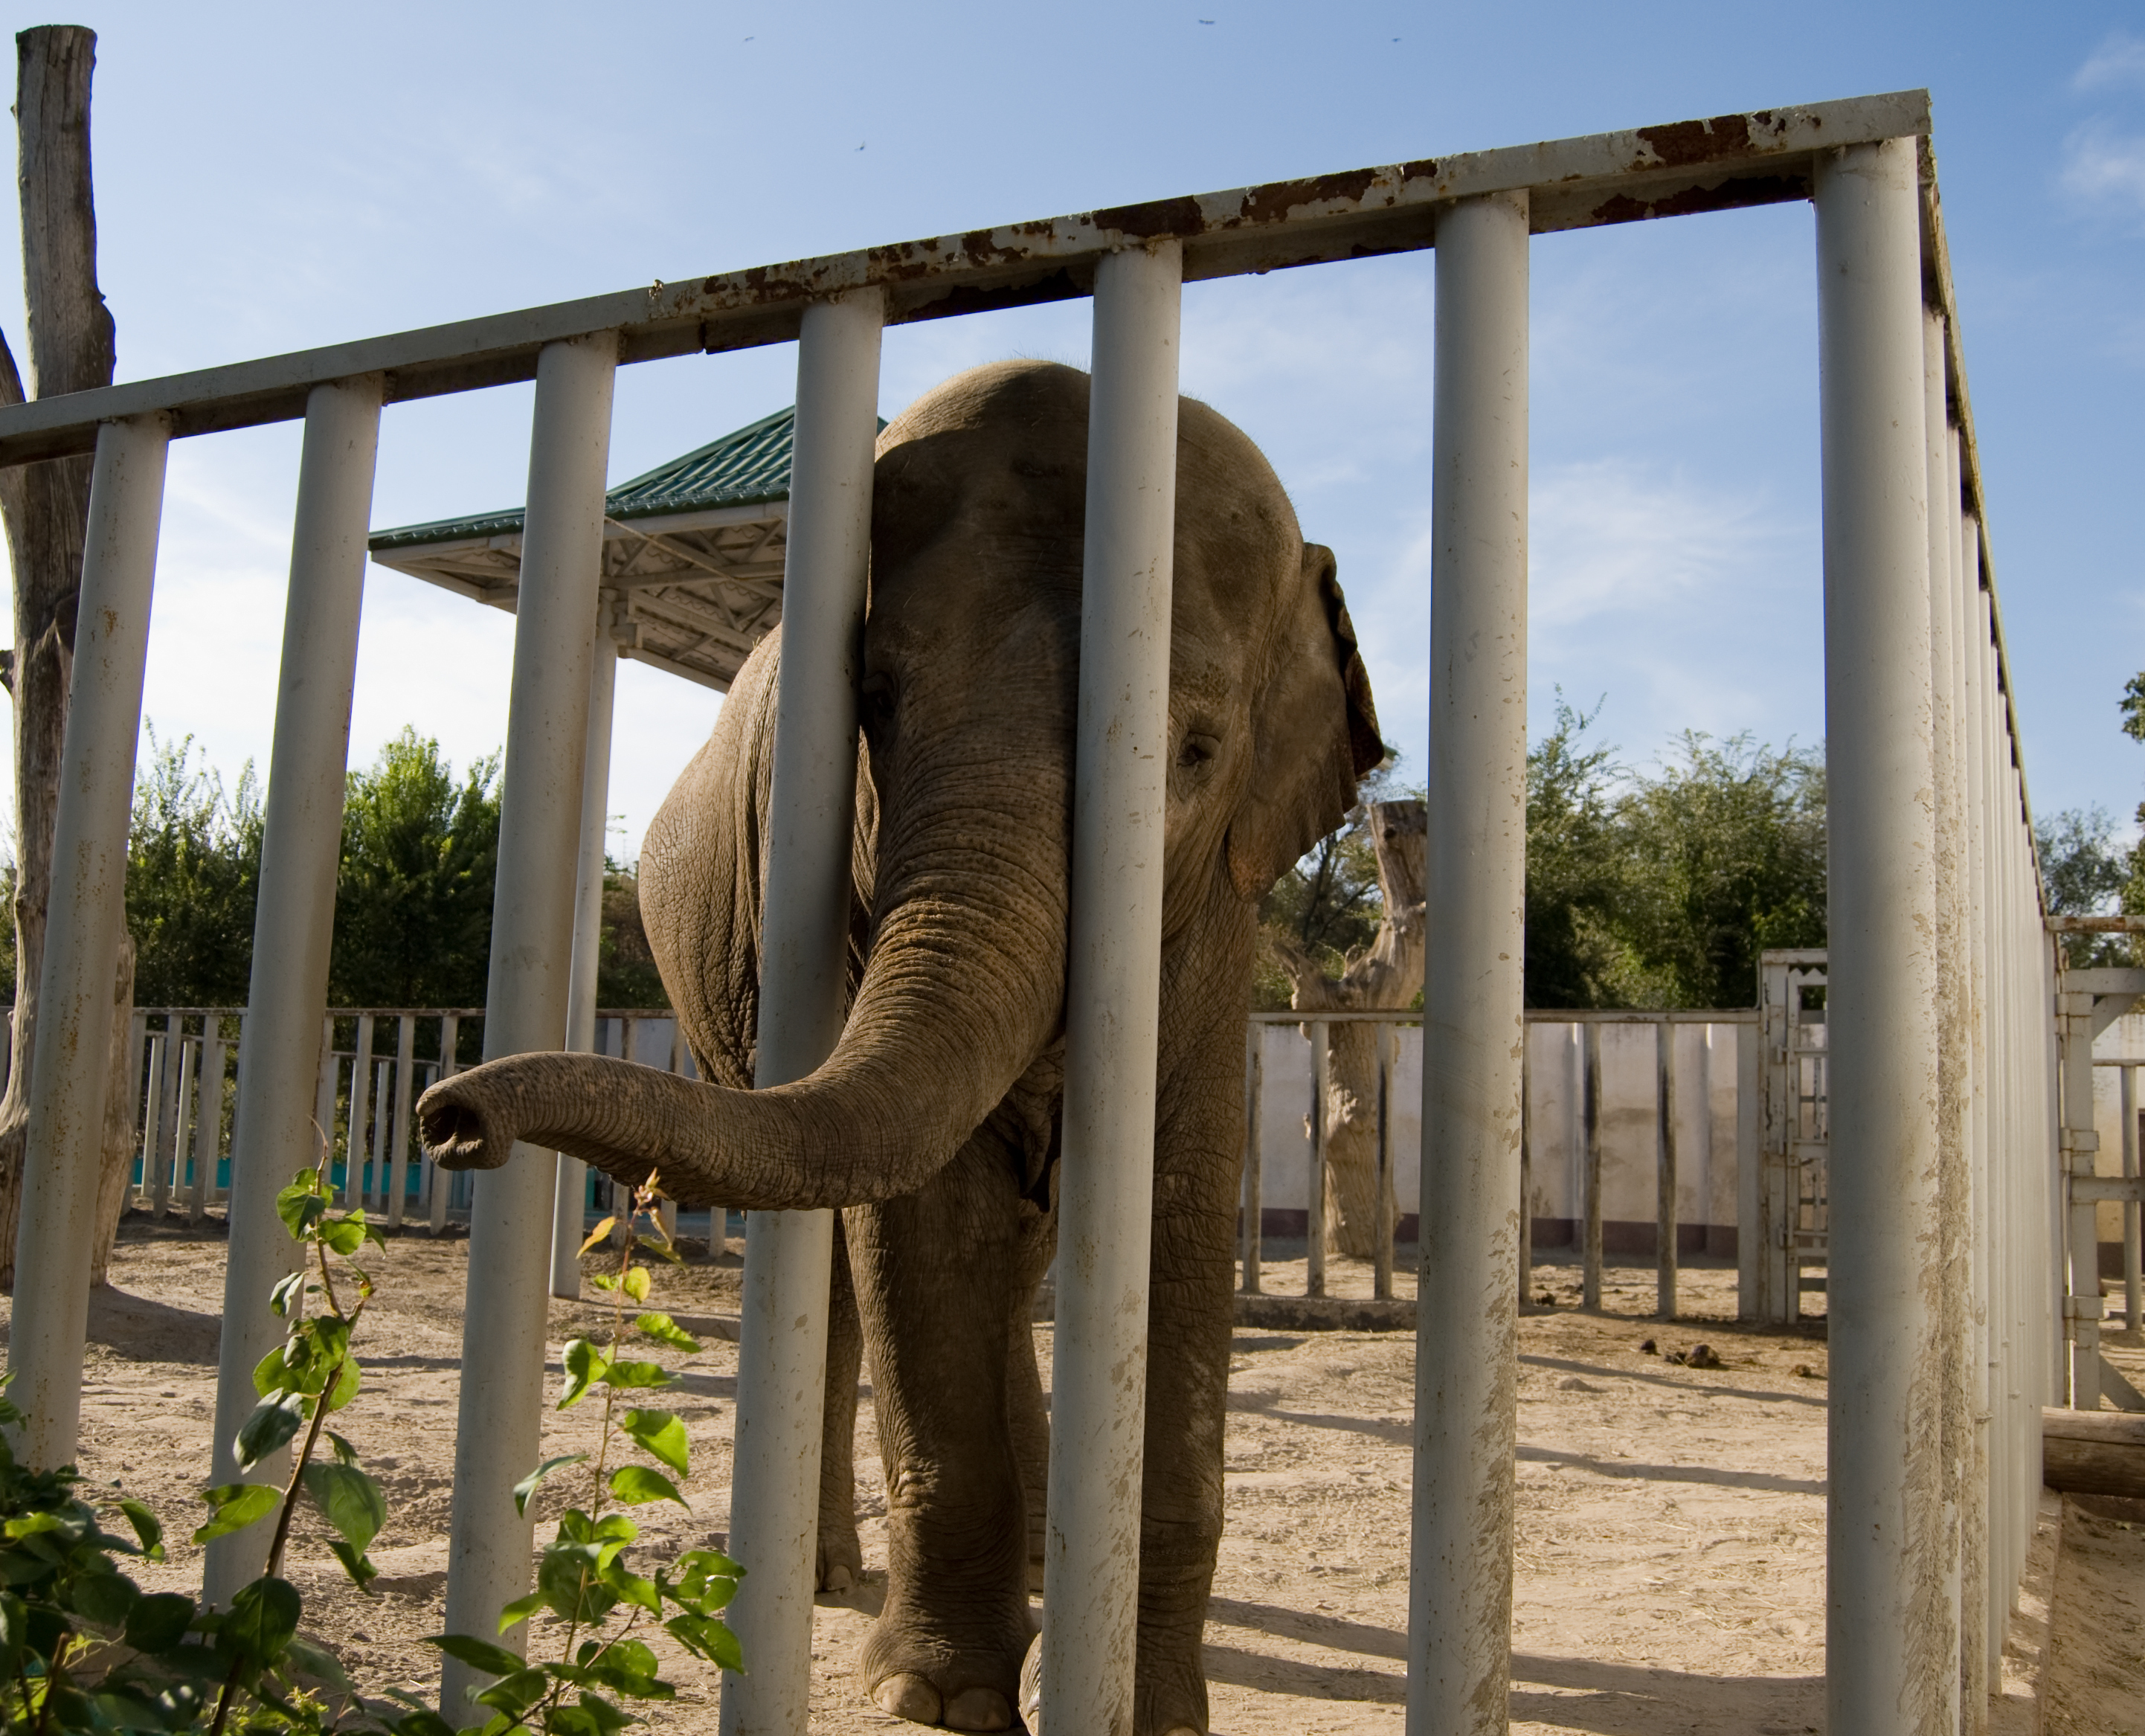 Sad elephant in cage at zoo